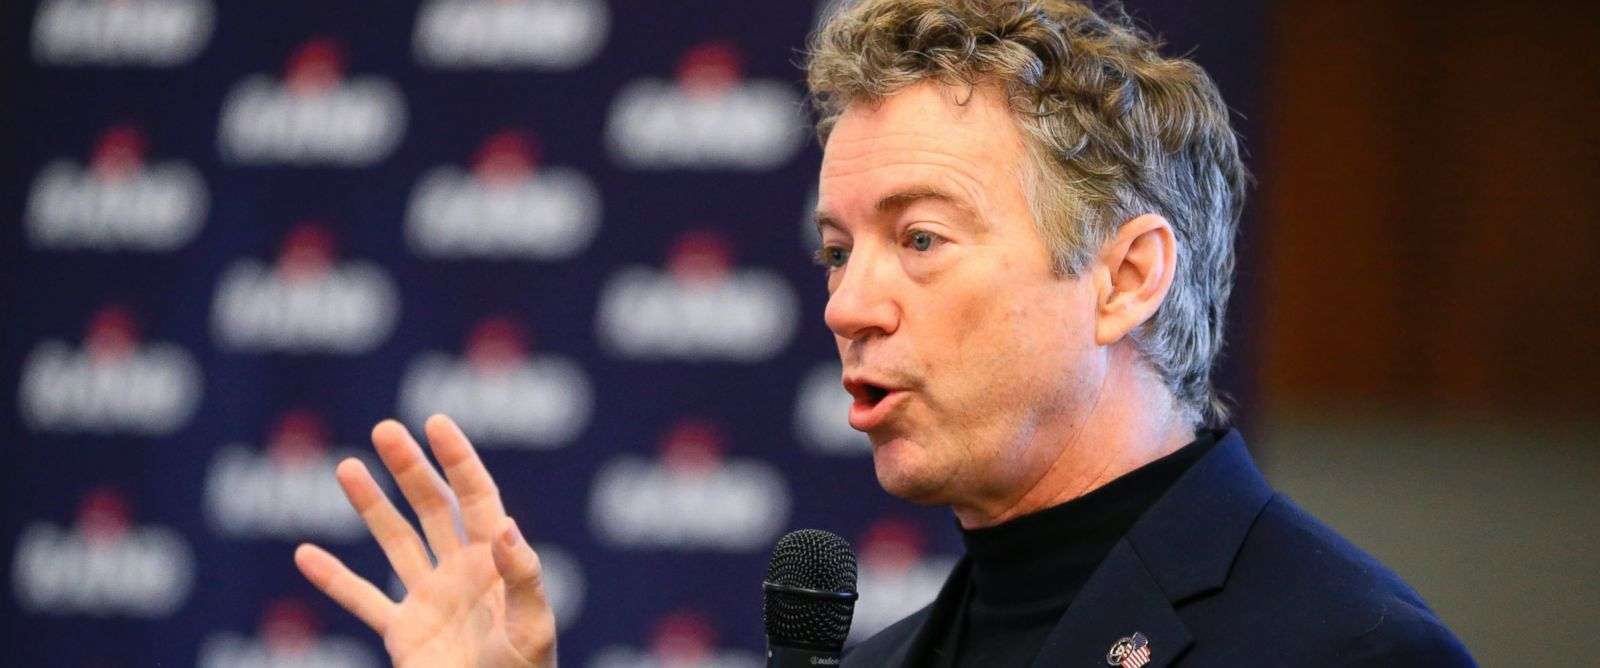 rand paul - photo #21